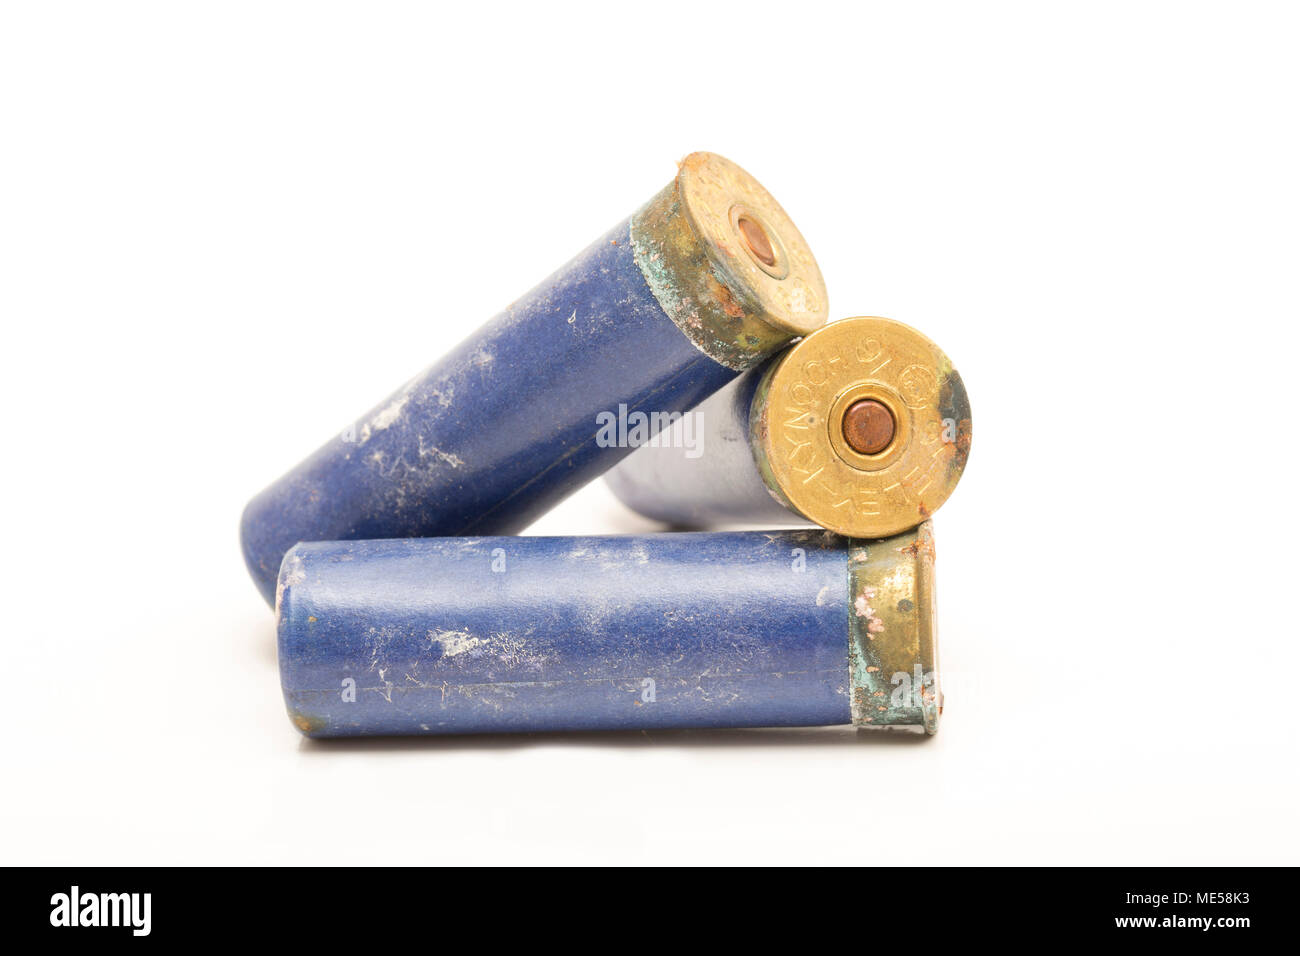 Old Eley-Kynoch 16-bore paper cased shotgun cartridges that have been left in damp conditions and have started to corrode. England UK GB - Stock Image